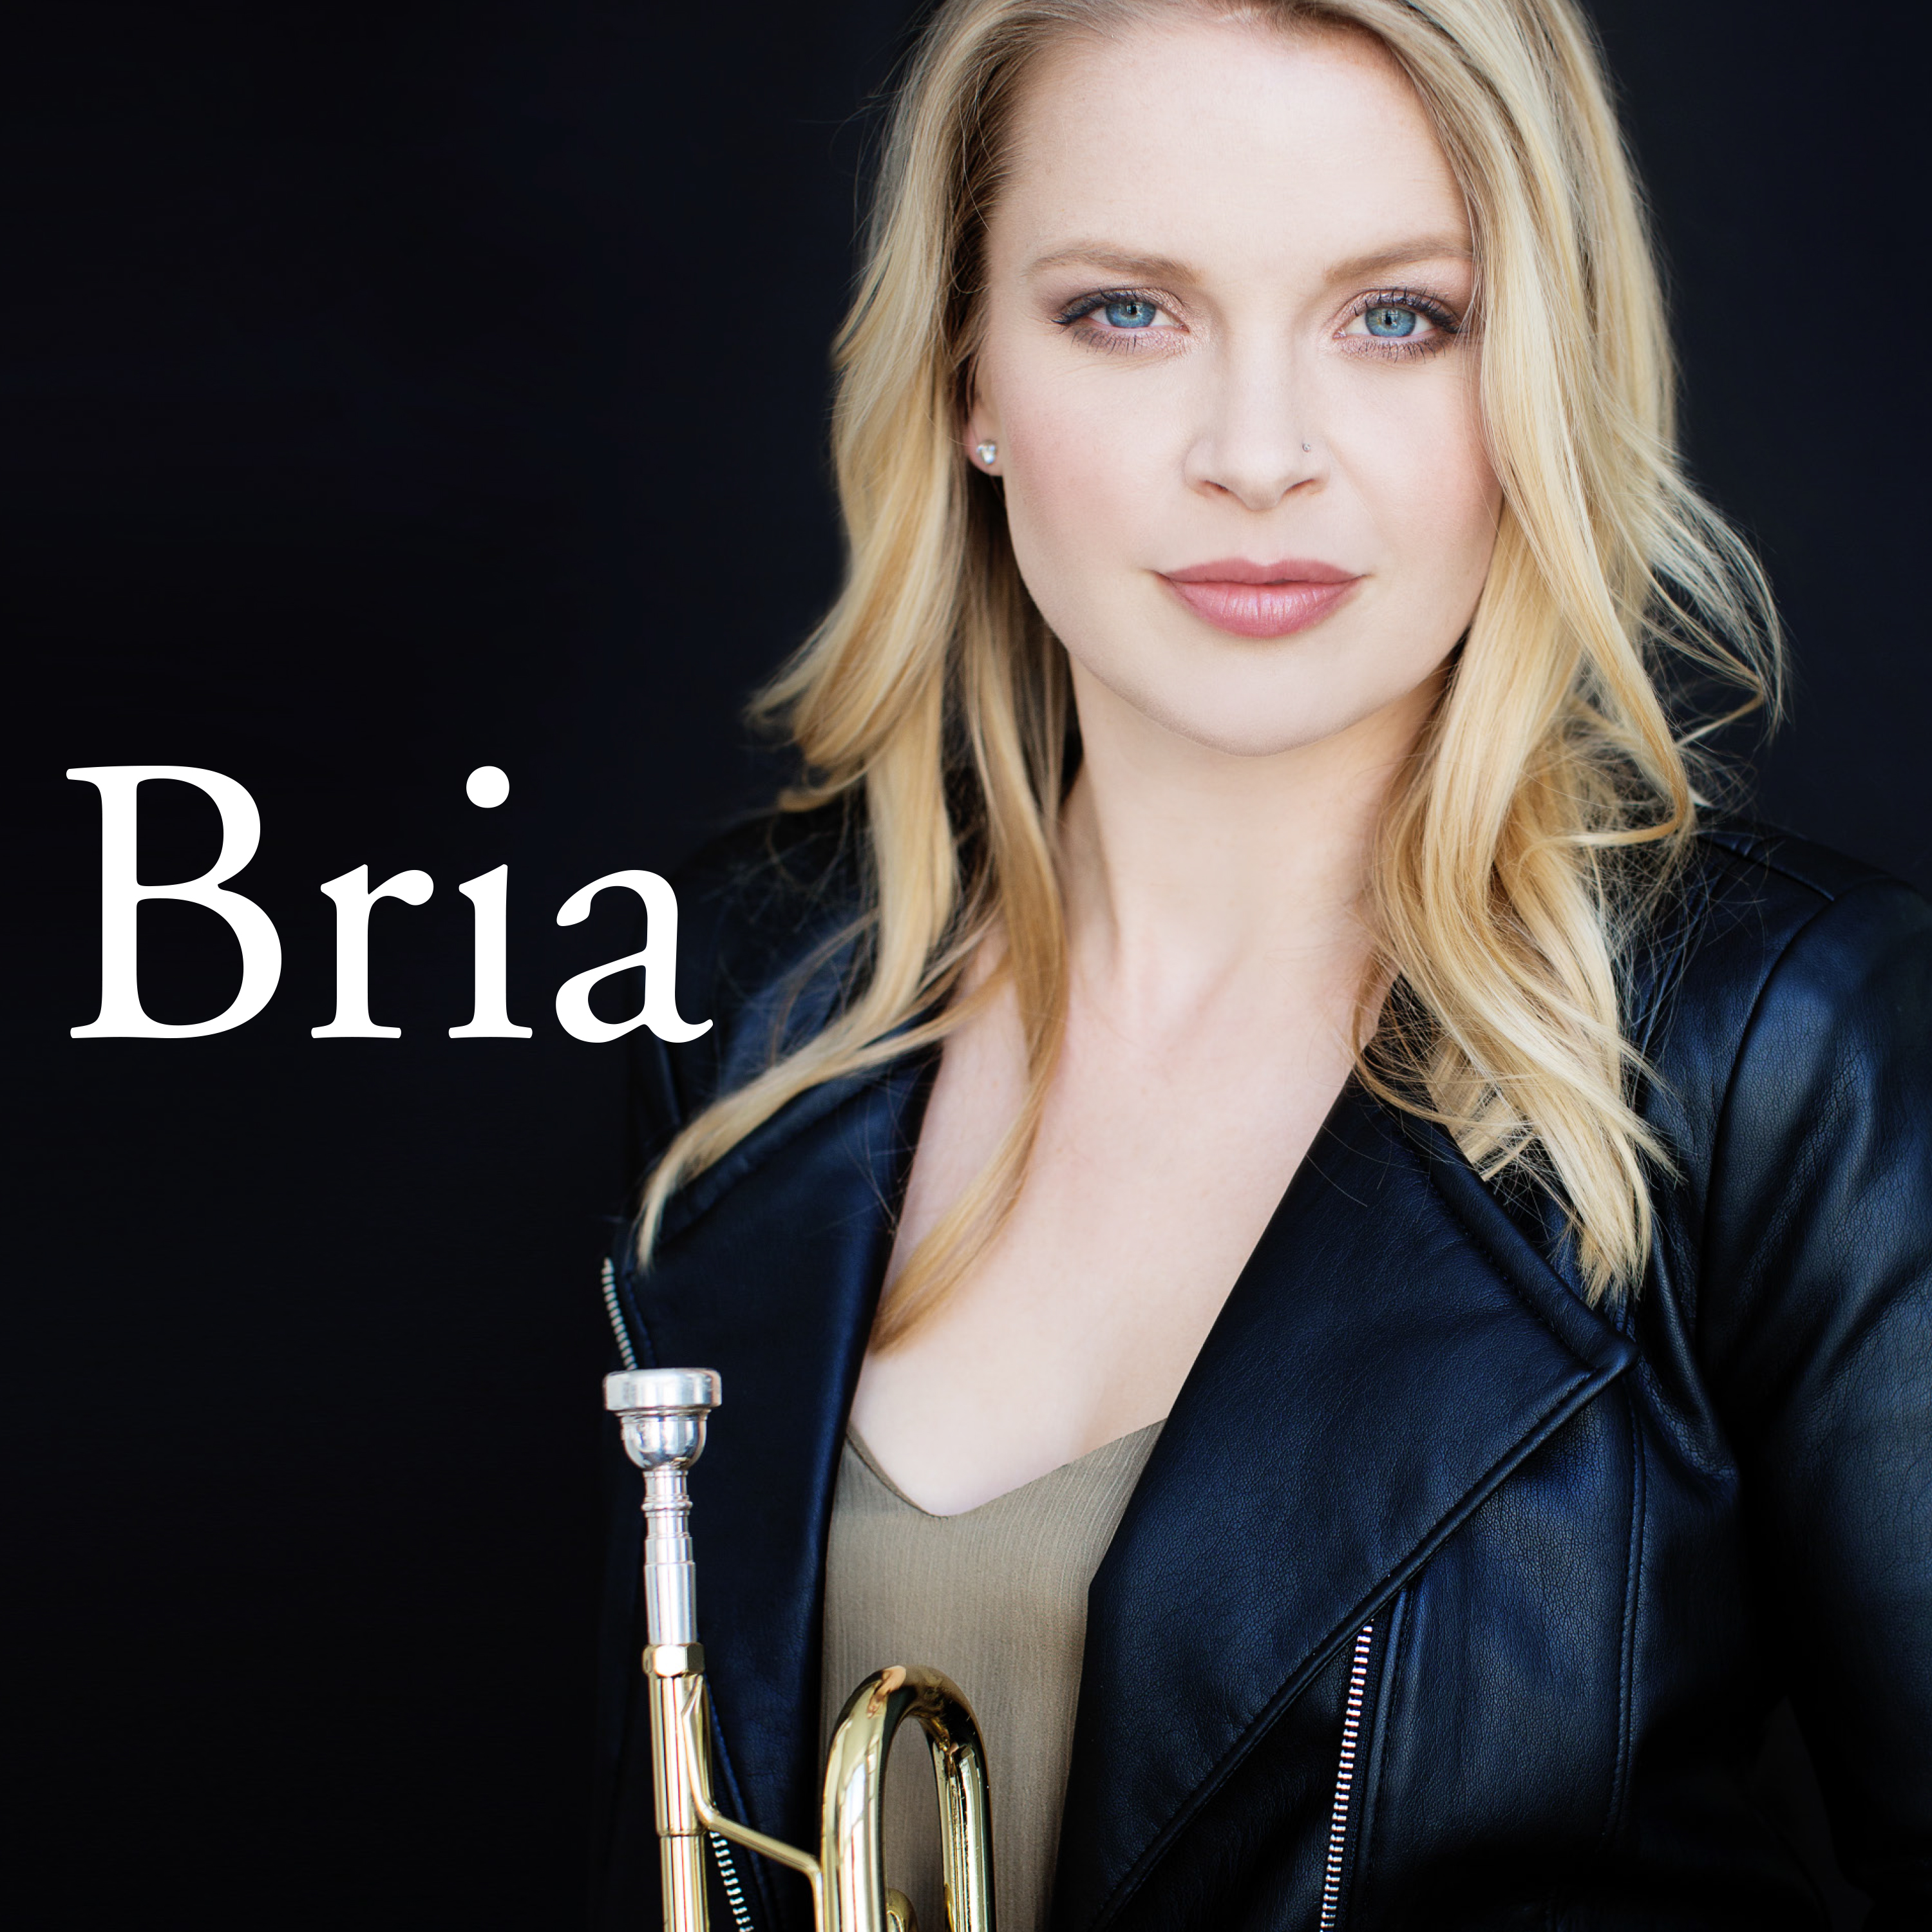 SINGER AND TRUMPETER BRIA SKONBERG RELEASES LABEL DEBUT BRIA, ON OKEH RECORDS AVAILABLE SEPTEMBER 23